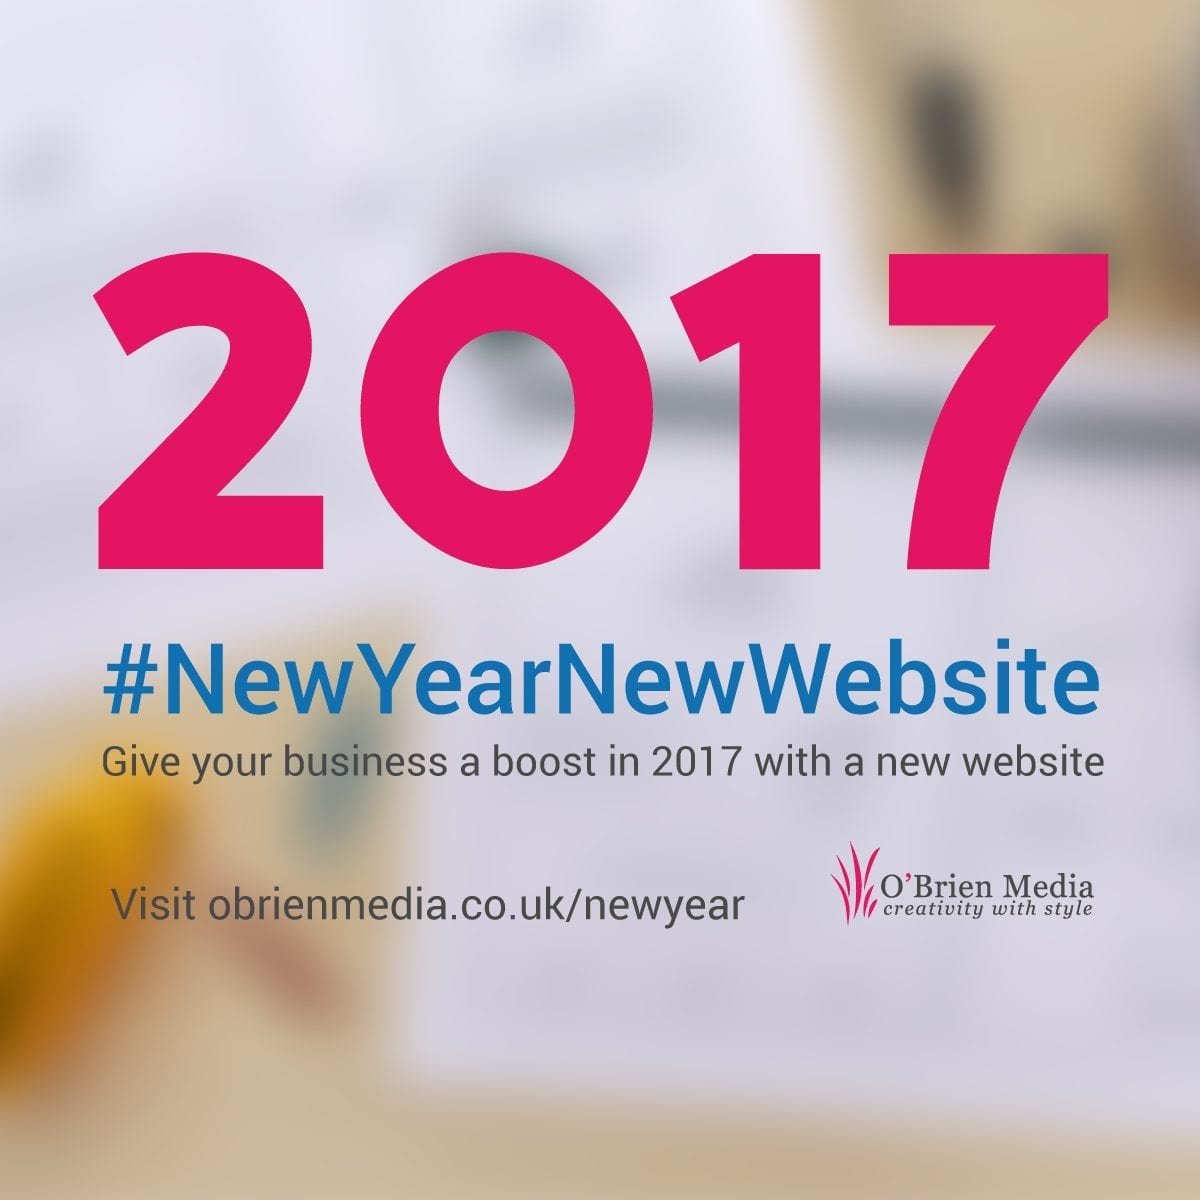 If you'd like a free appraisal of your website, with advice on how it could be improved and a no-obligation quote to bring it up to date just drop us a line on hello@obrienmedia.co.uk or call freephone 0800 327 7540 (or 01793 230654 if you prefer!).